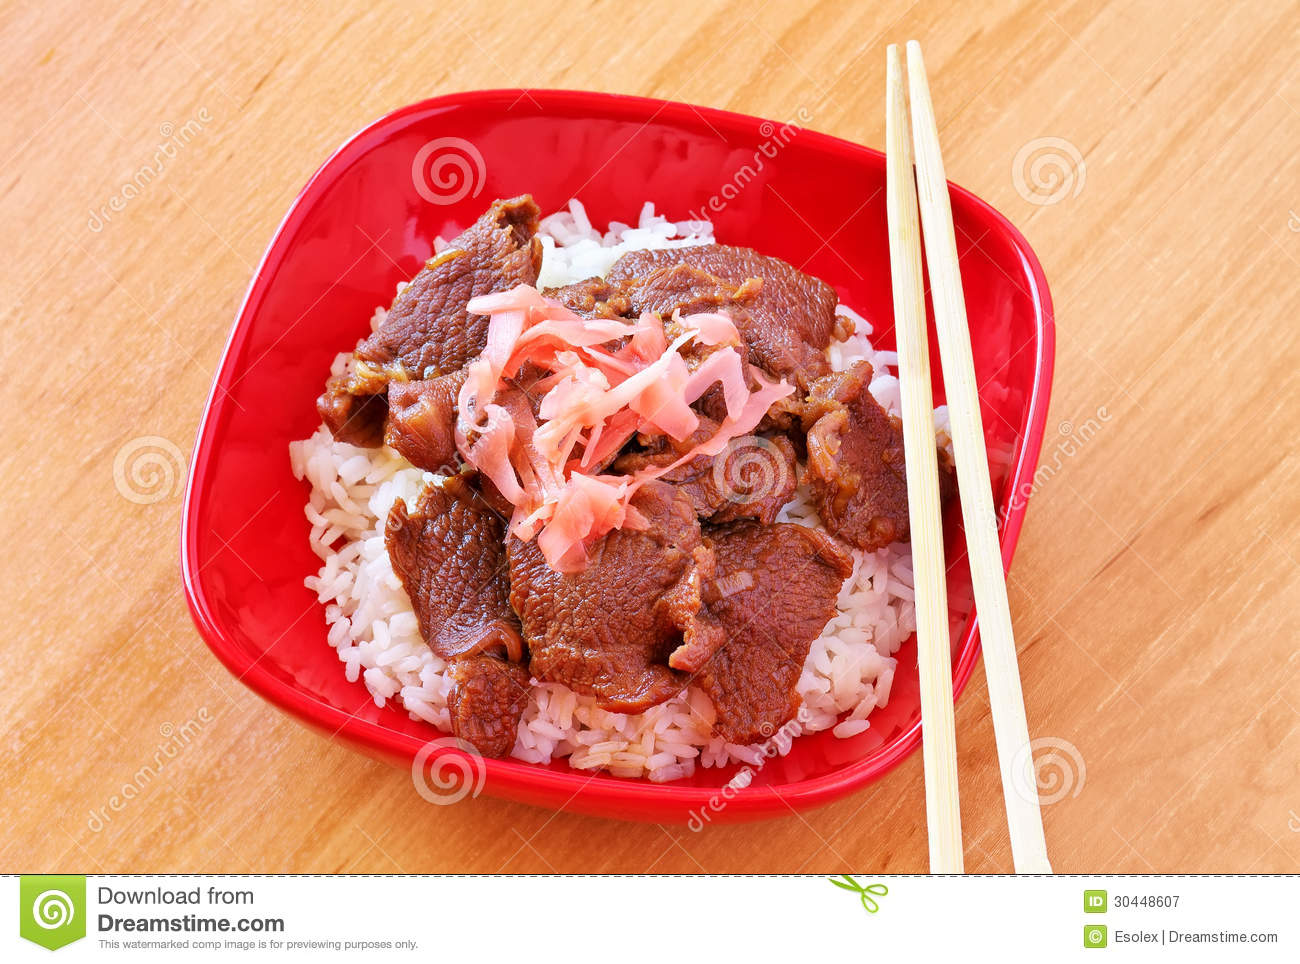 Gyudon. Beef Bowl. Japanese Dish. Rice with beef and onions.